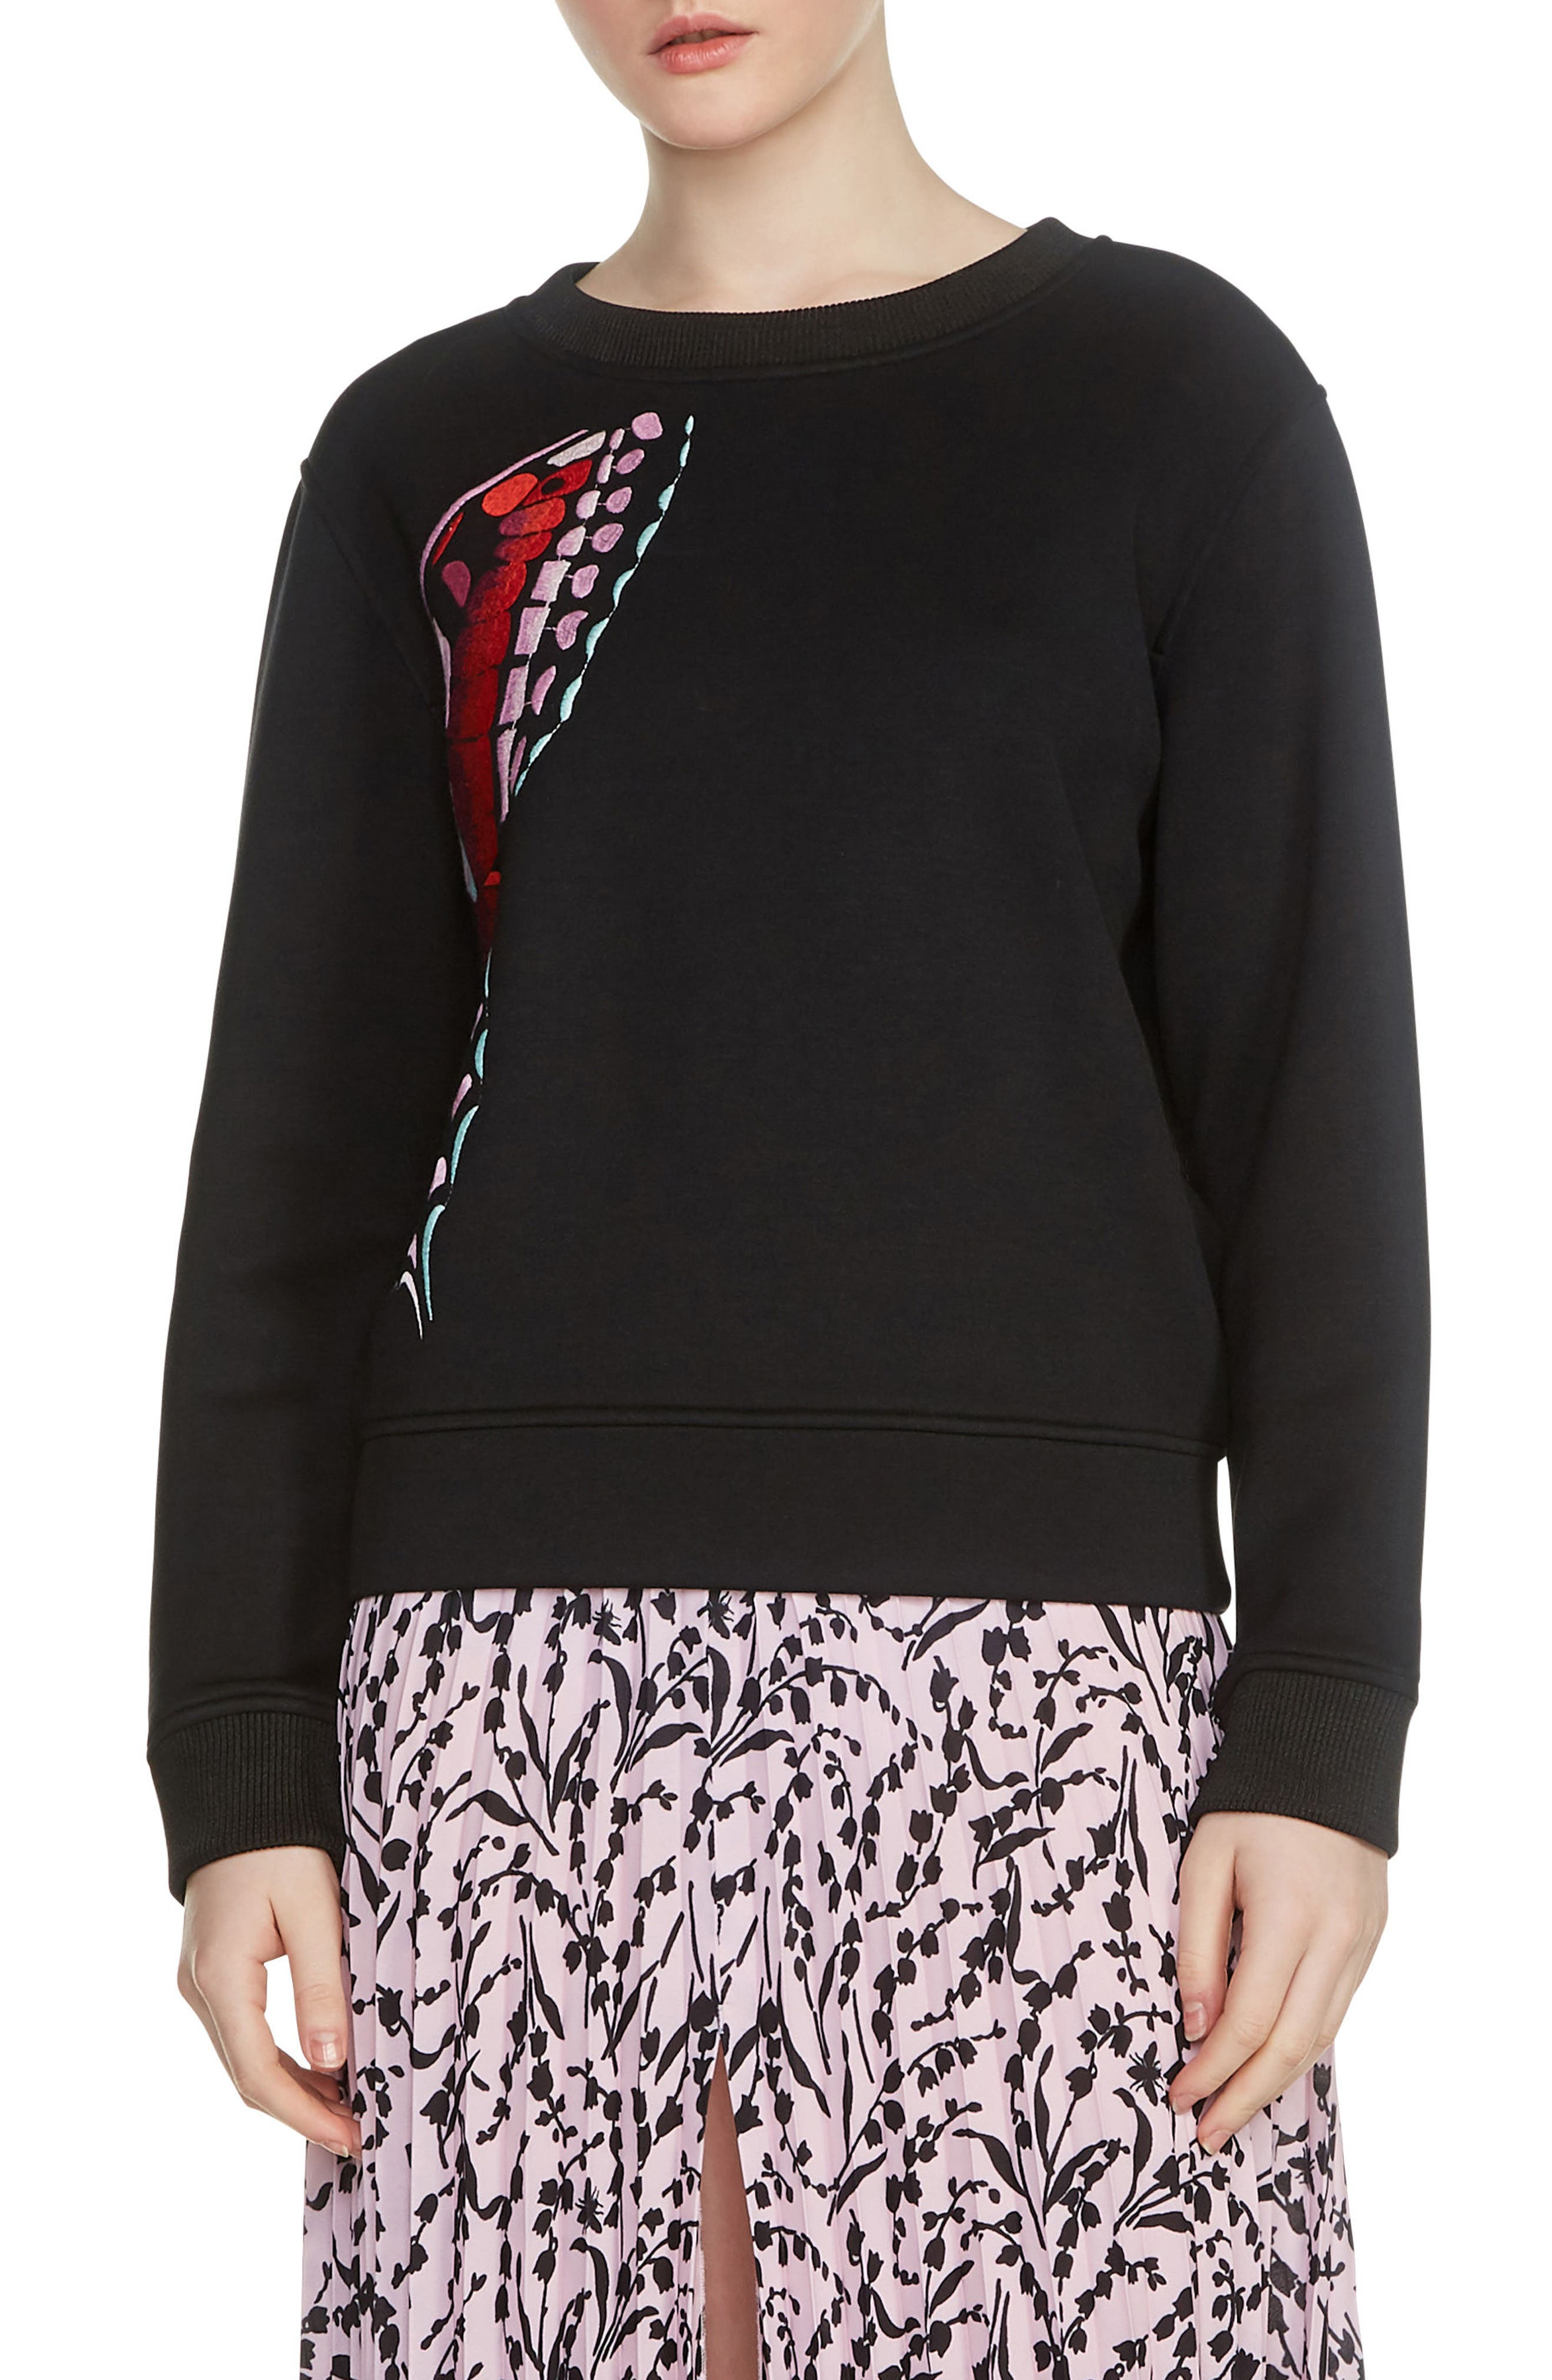 Theophile Embroidered Sweatshirt,                         Main,                         color, 001